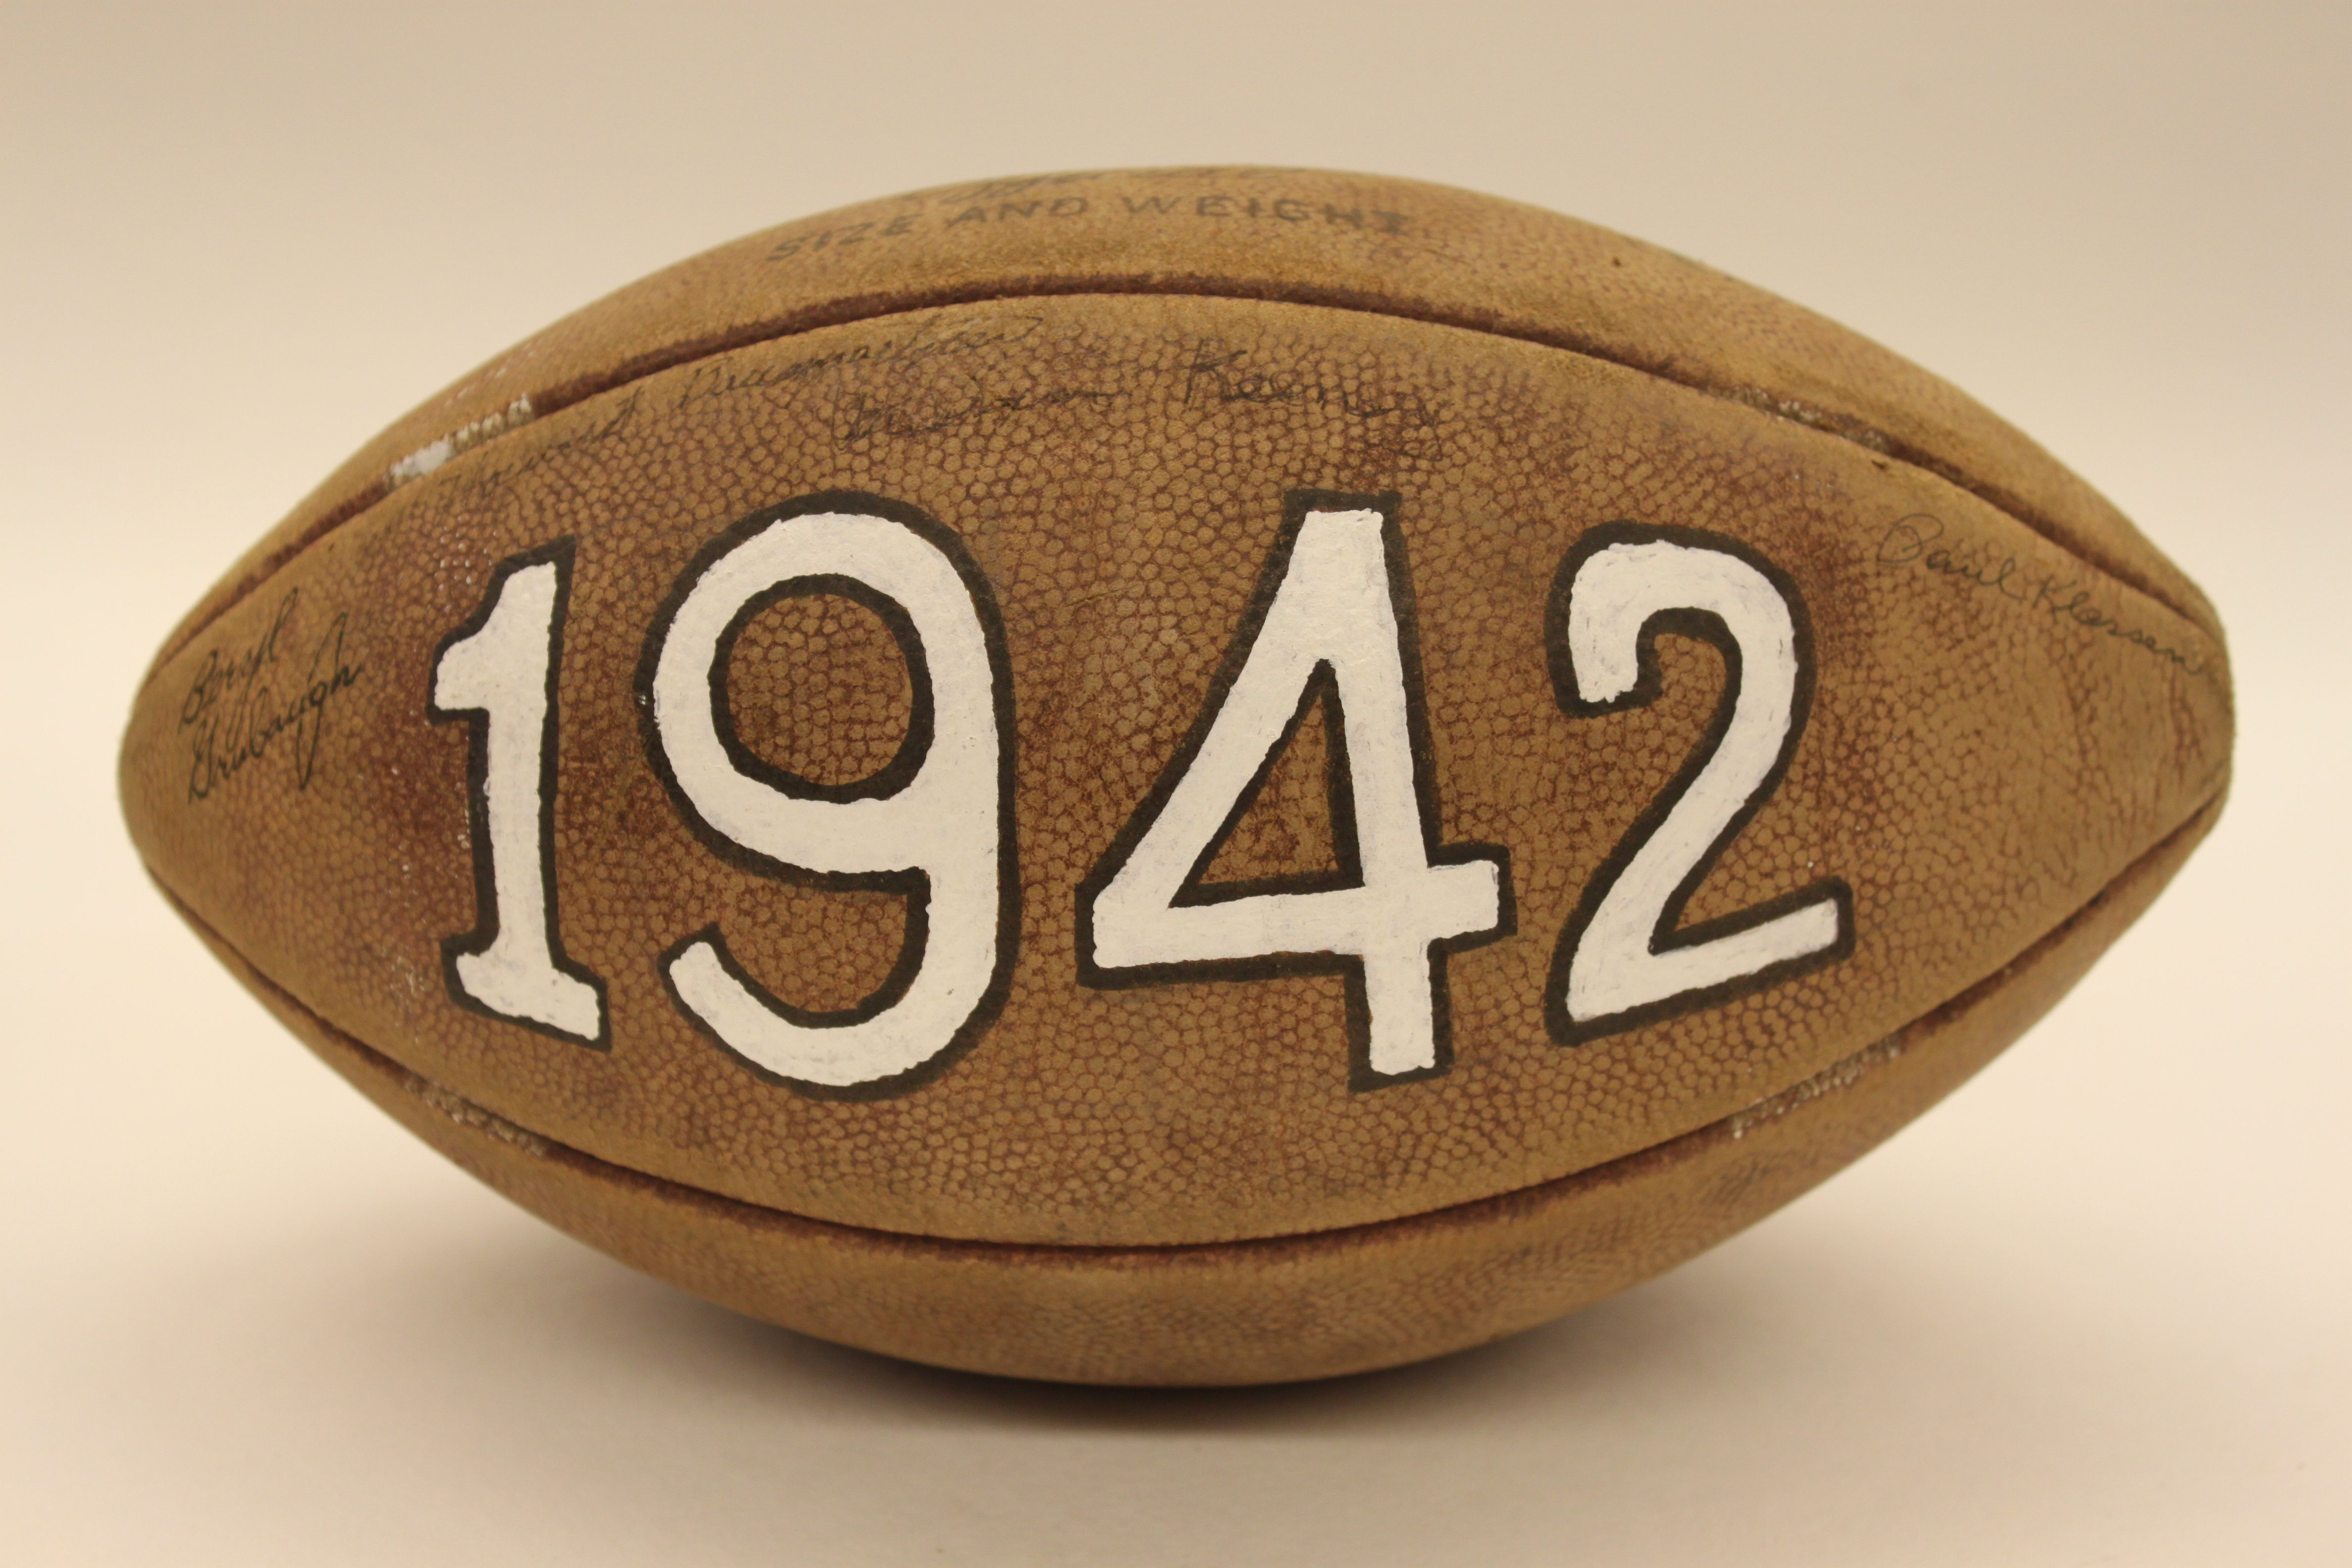 Football signed by the 1942 bluffton college football team